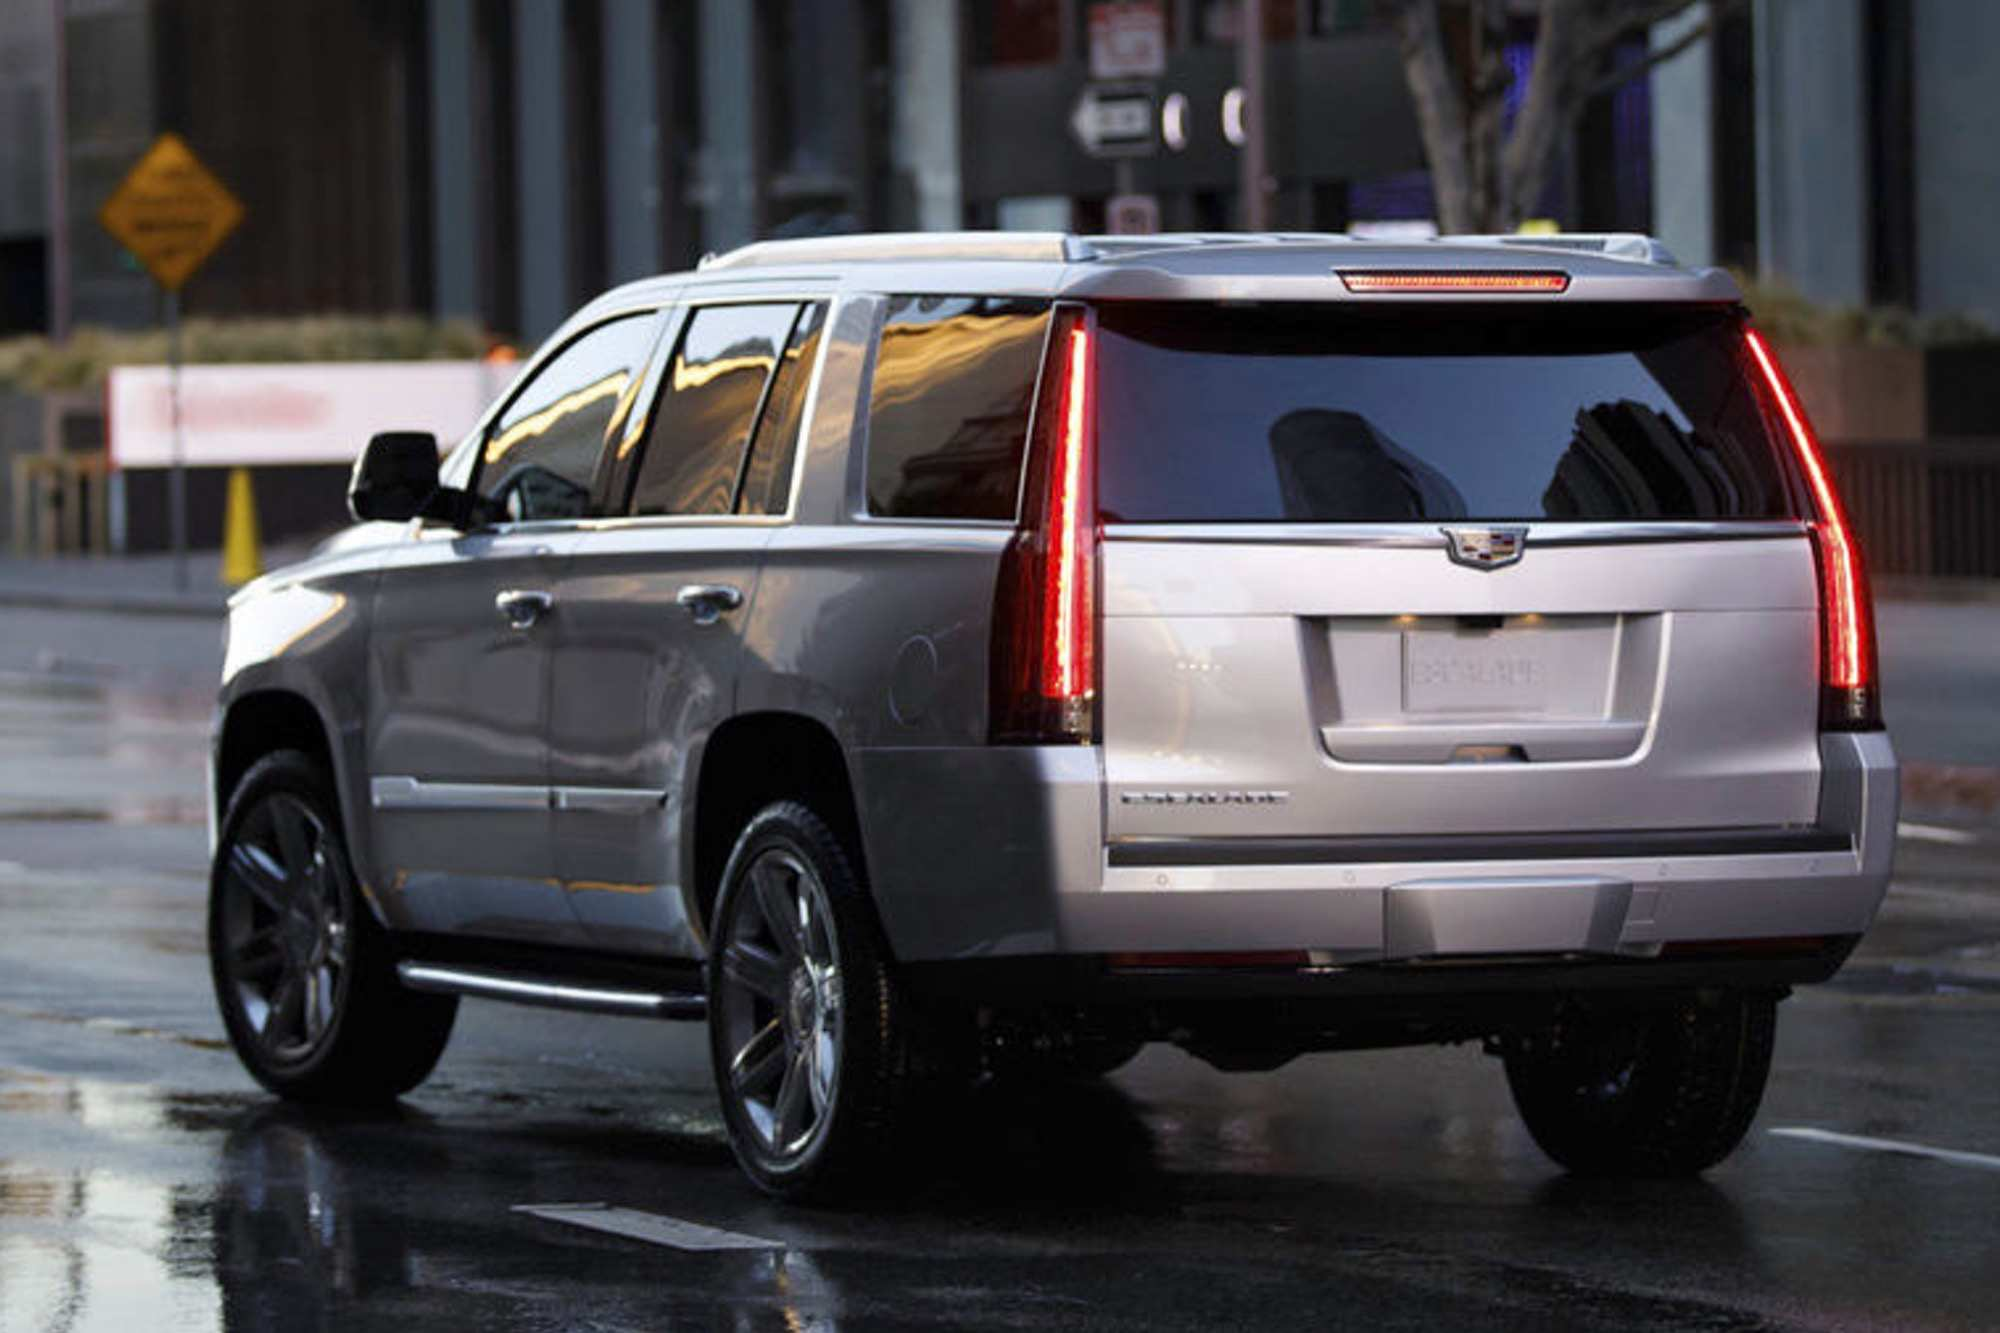 52 Concept of When Will The 2020 Cadillac Escalade Be Released Reviews by When Will The 2020 Cadillac Escalade Be Released